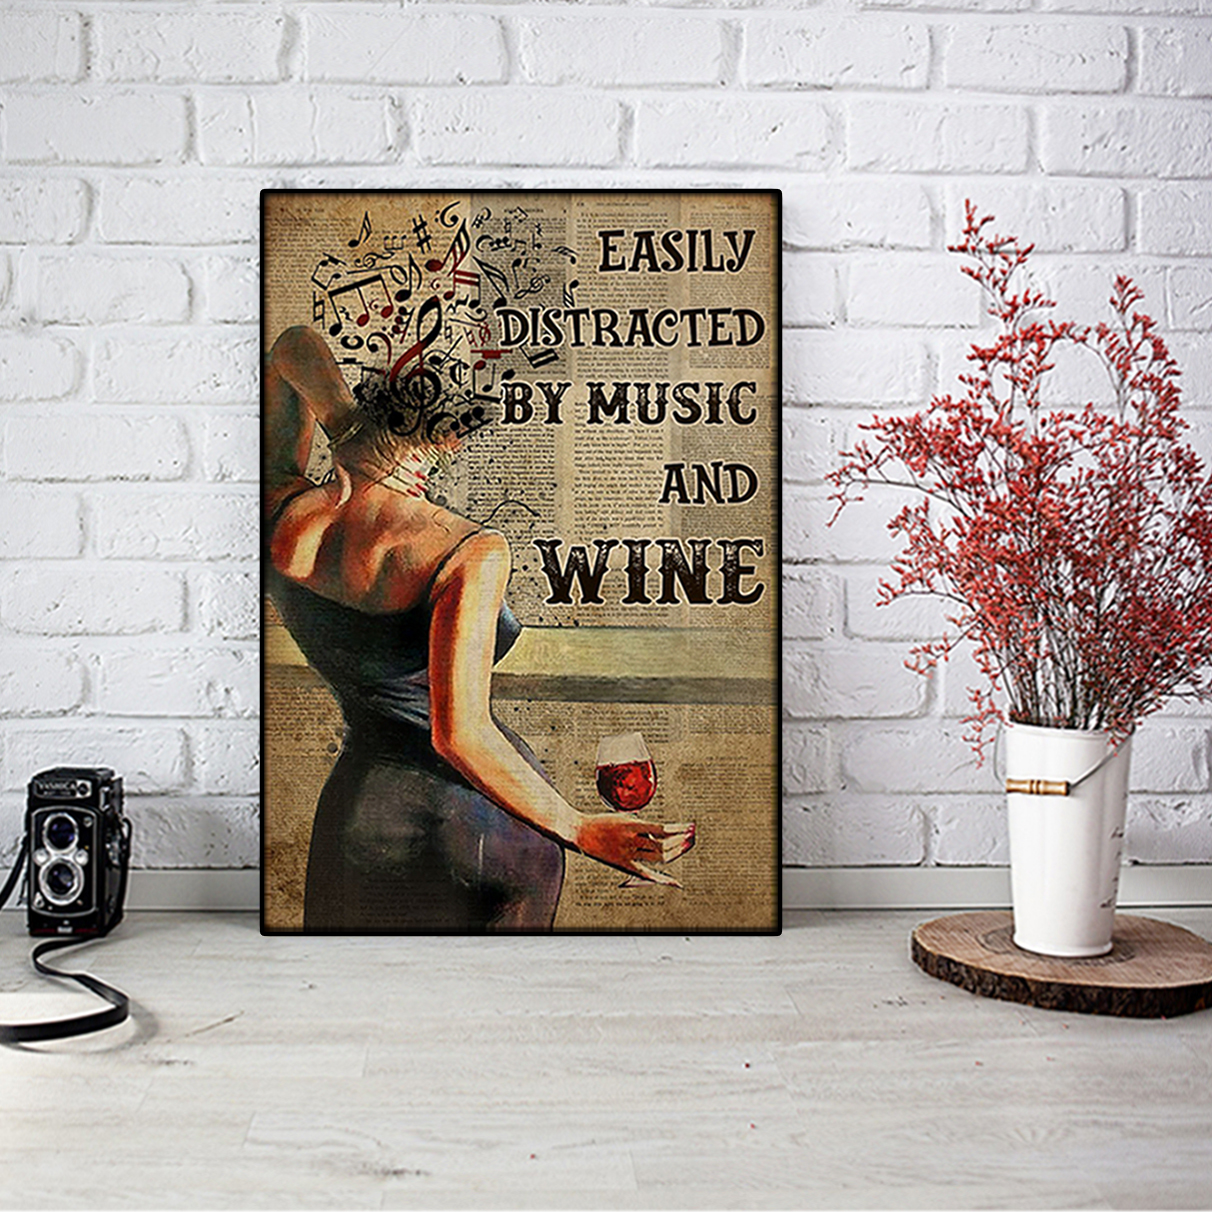 Easily distracted by music and wine book poster A2